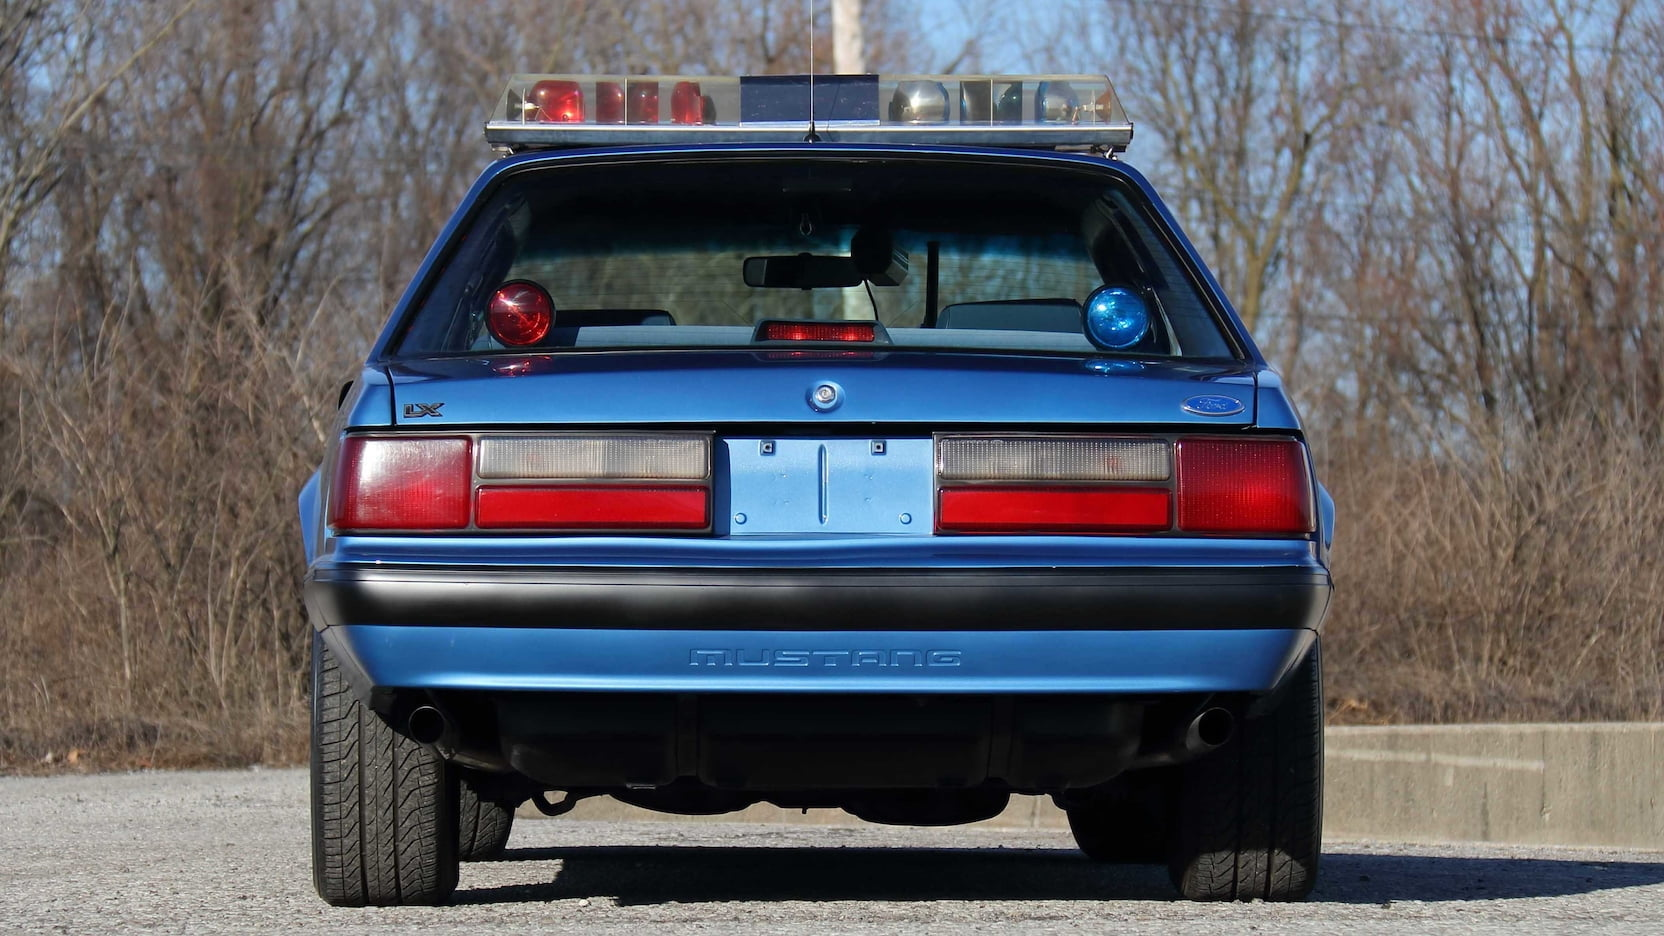 1989 Ford Mustang ssp police car rear